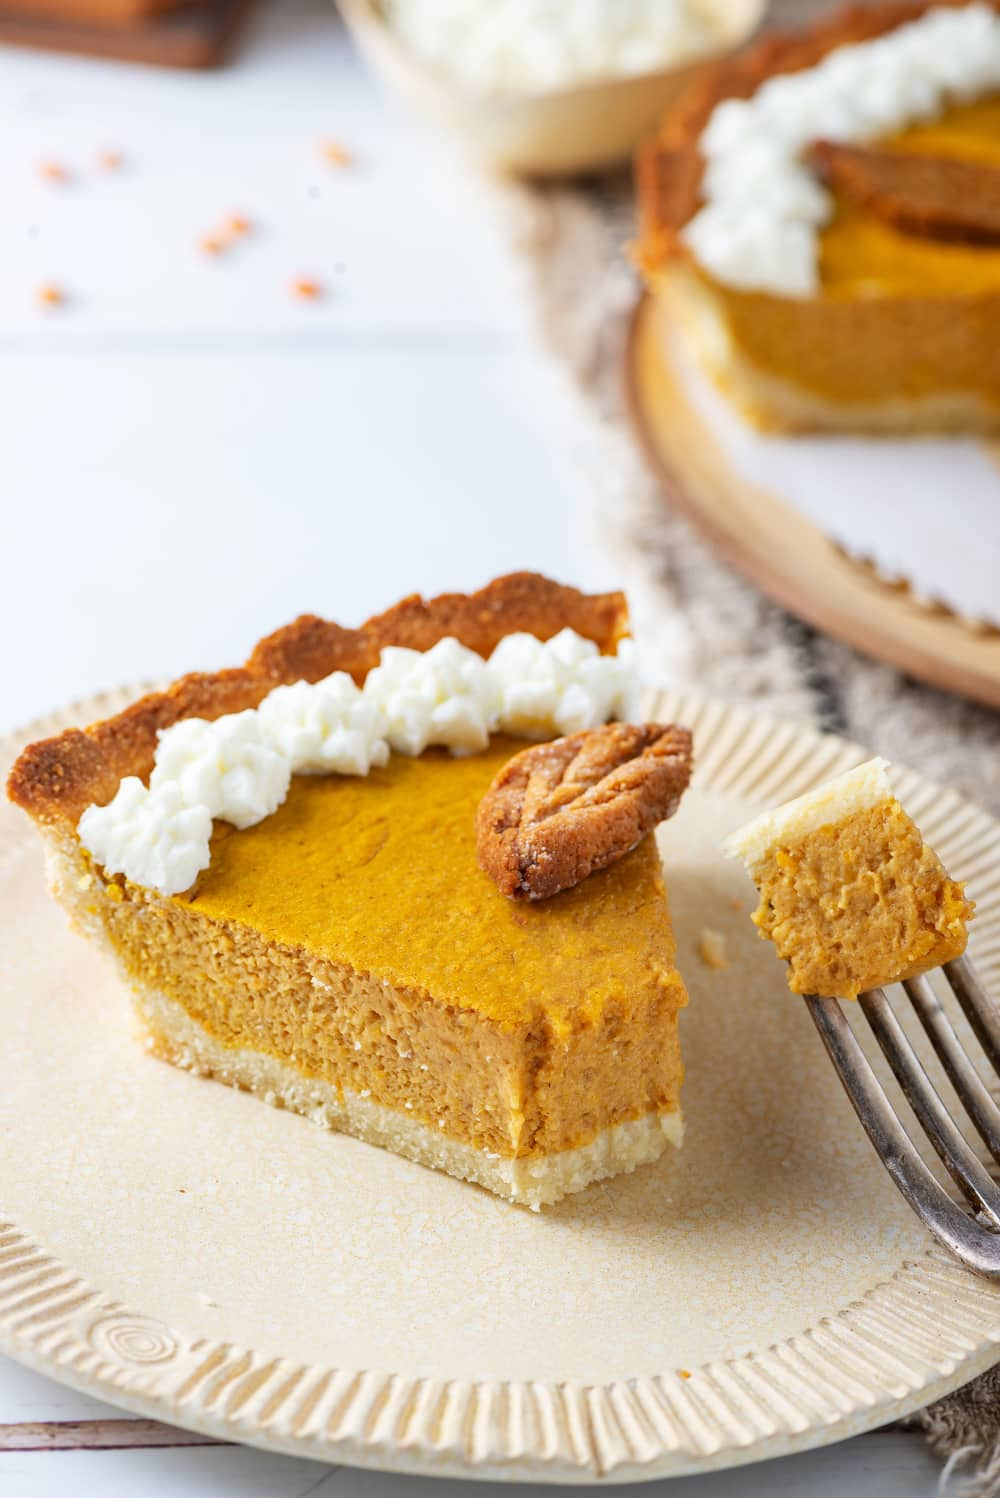 A plate with a slice of pumpkin pie, and a fork holding a piece of the pie next to it.